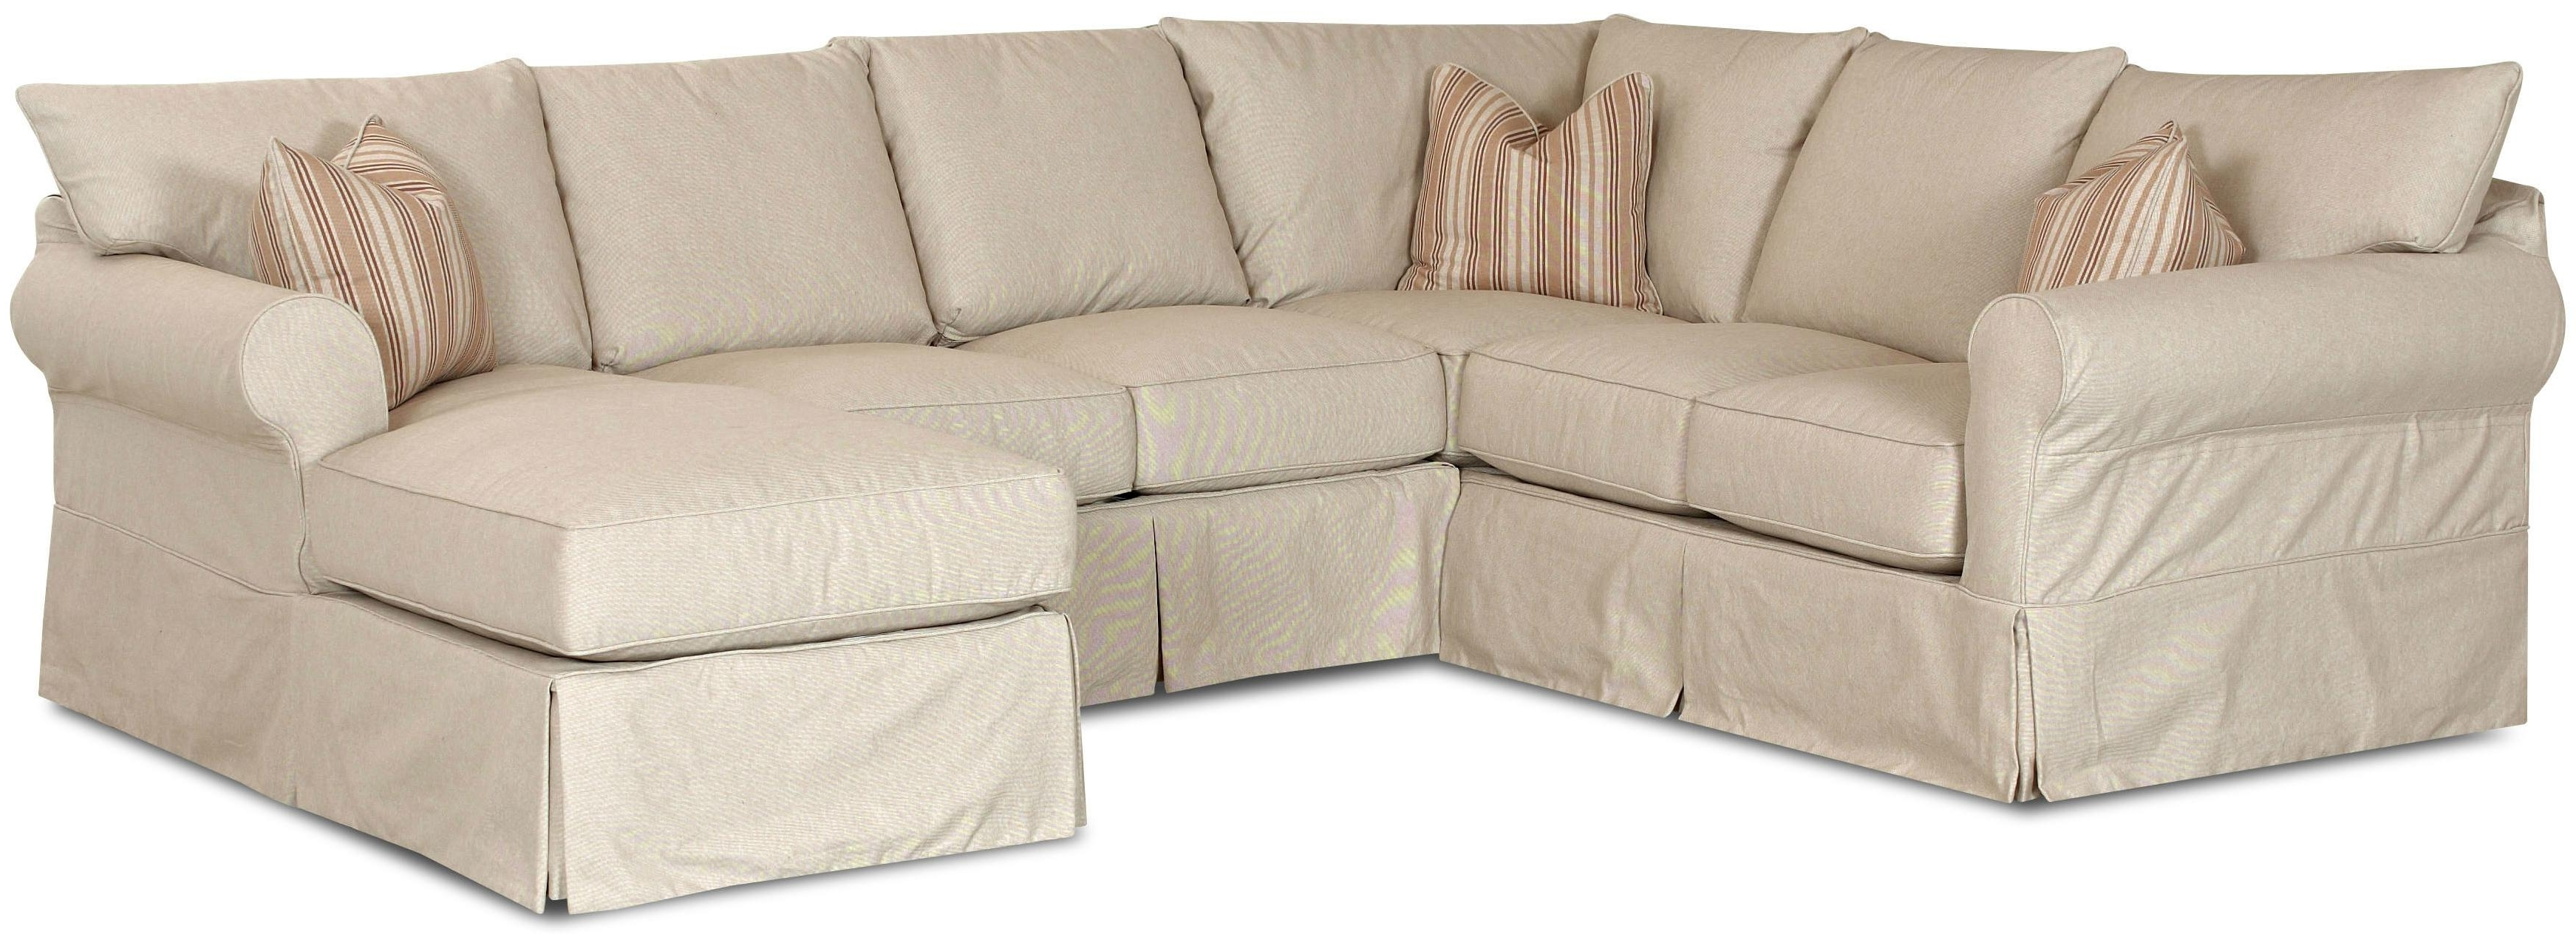 Chaise Sofa Covers Within Recent Klaussner Jenny Slip Cover Sectional Sofa With Right Chaise – Ahfa (View 8 of 15)